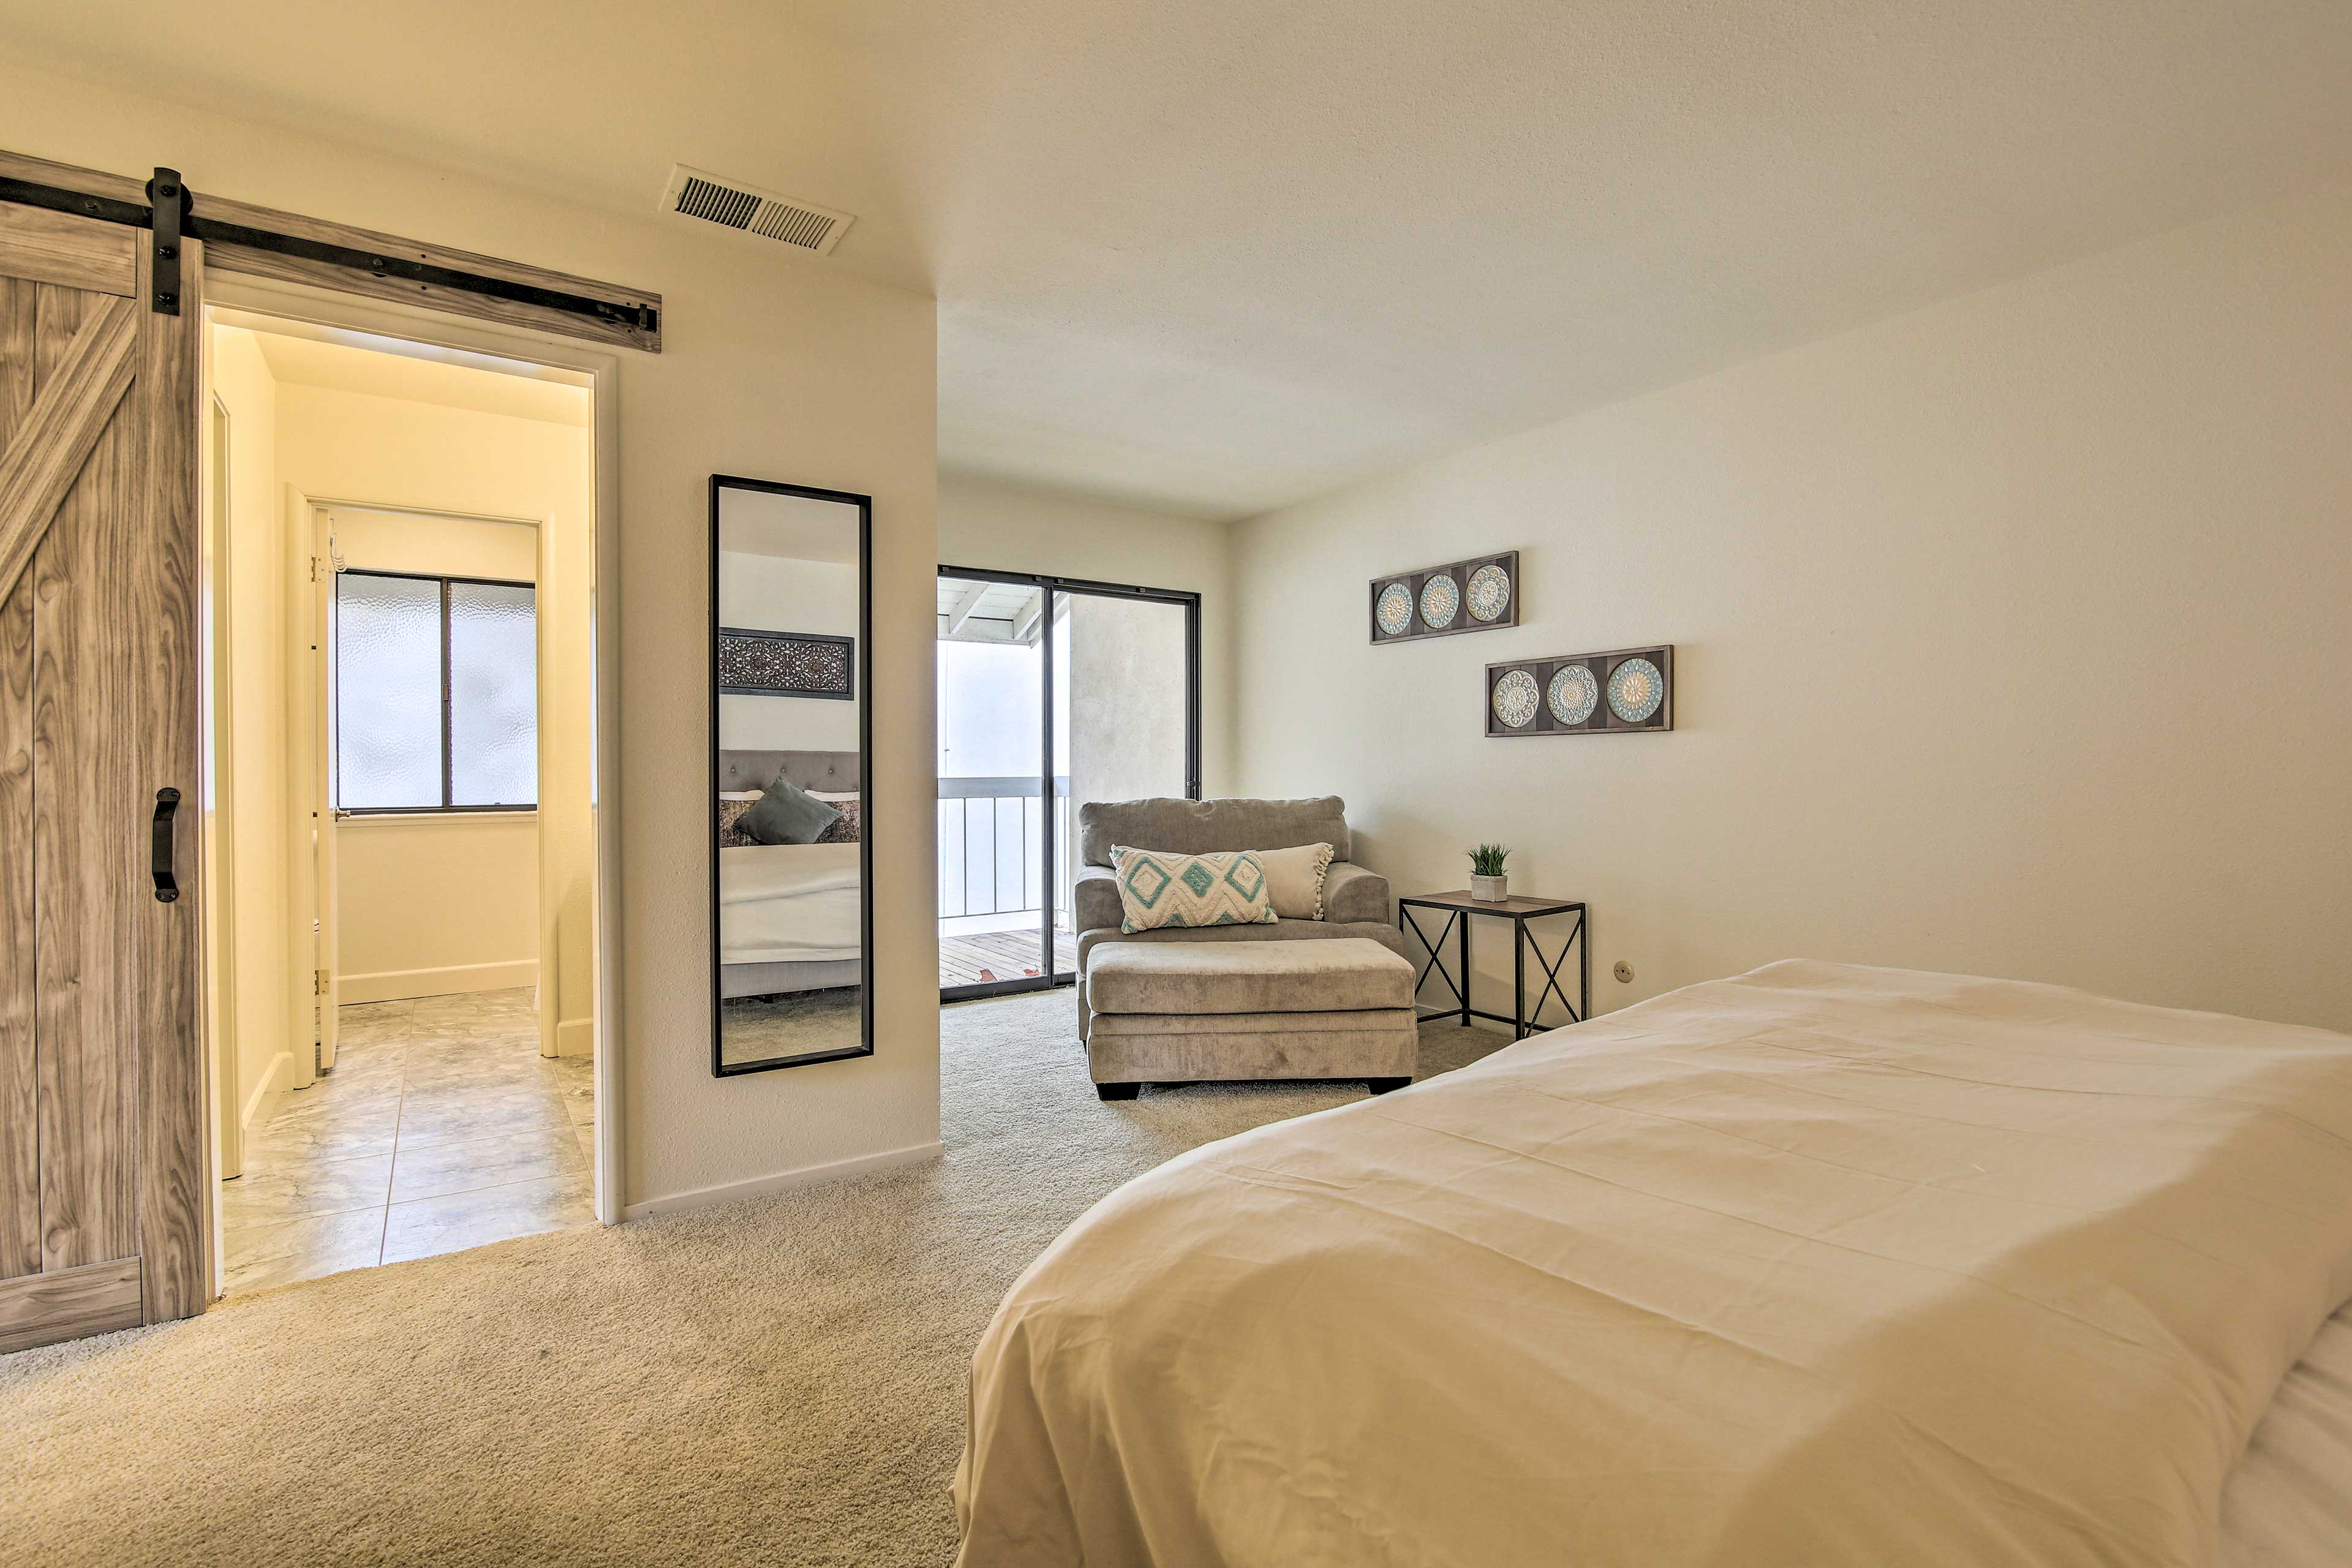 Walk outside on to the balcony or head to the en-suite bathroom.